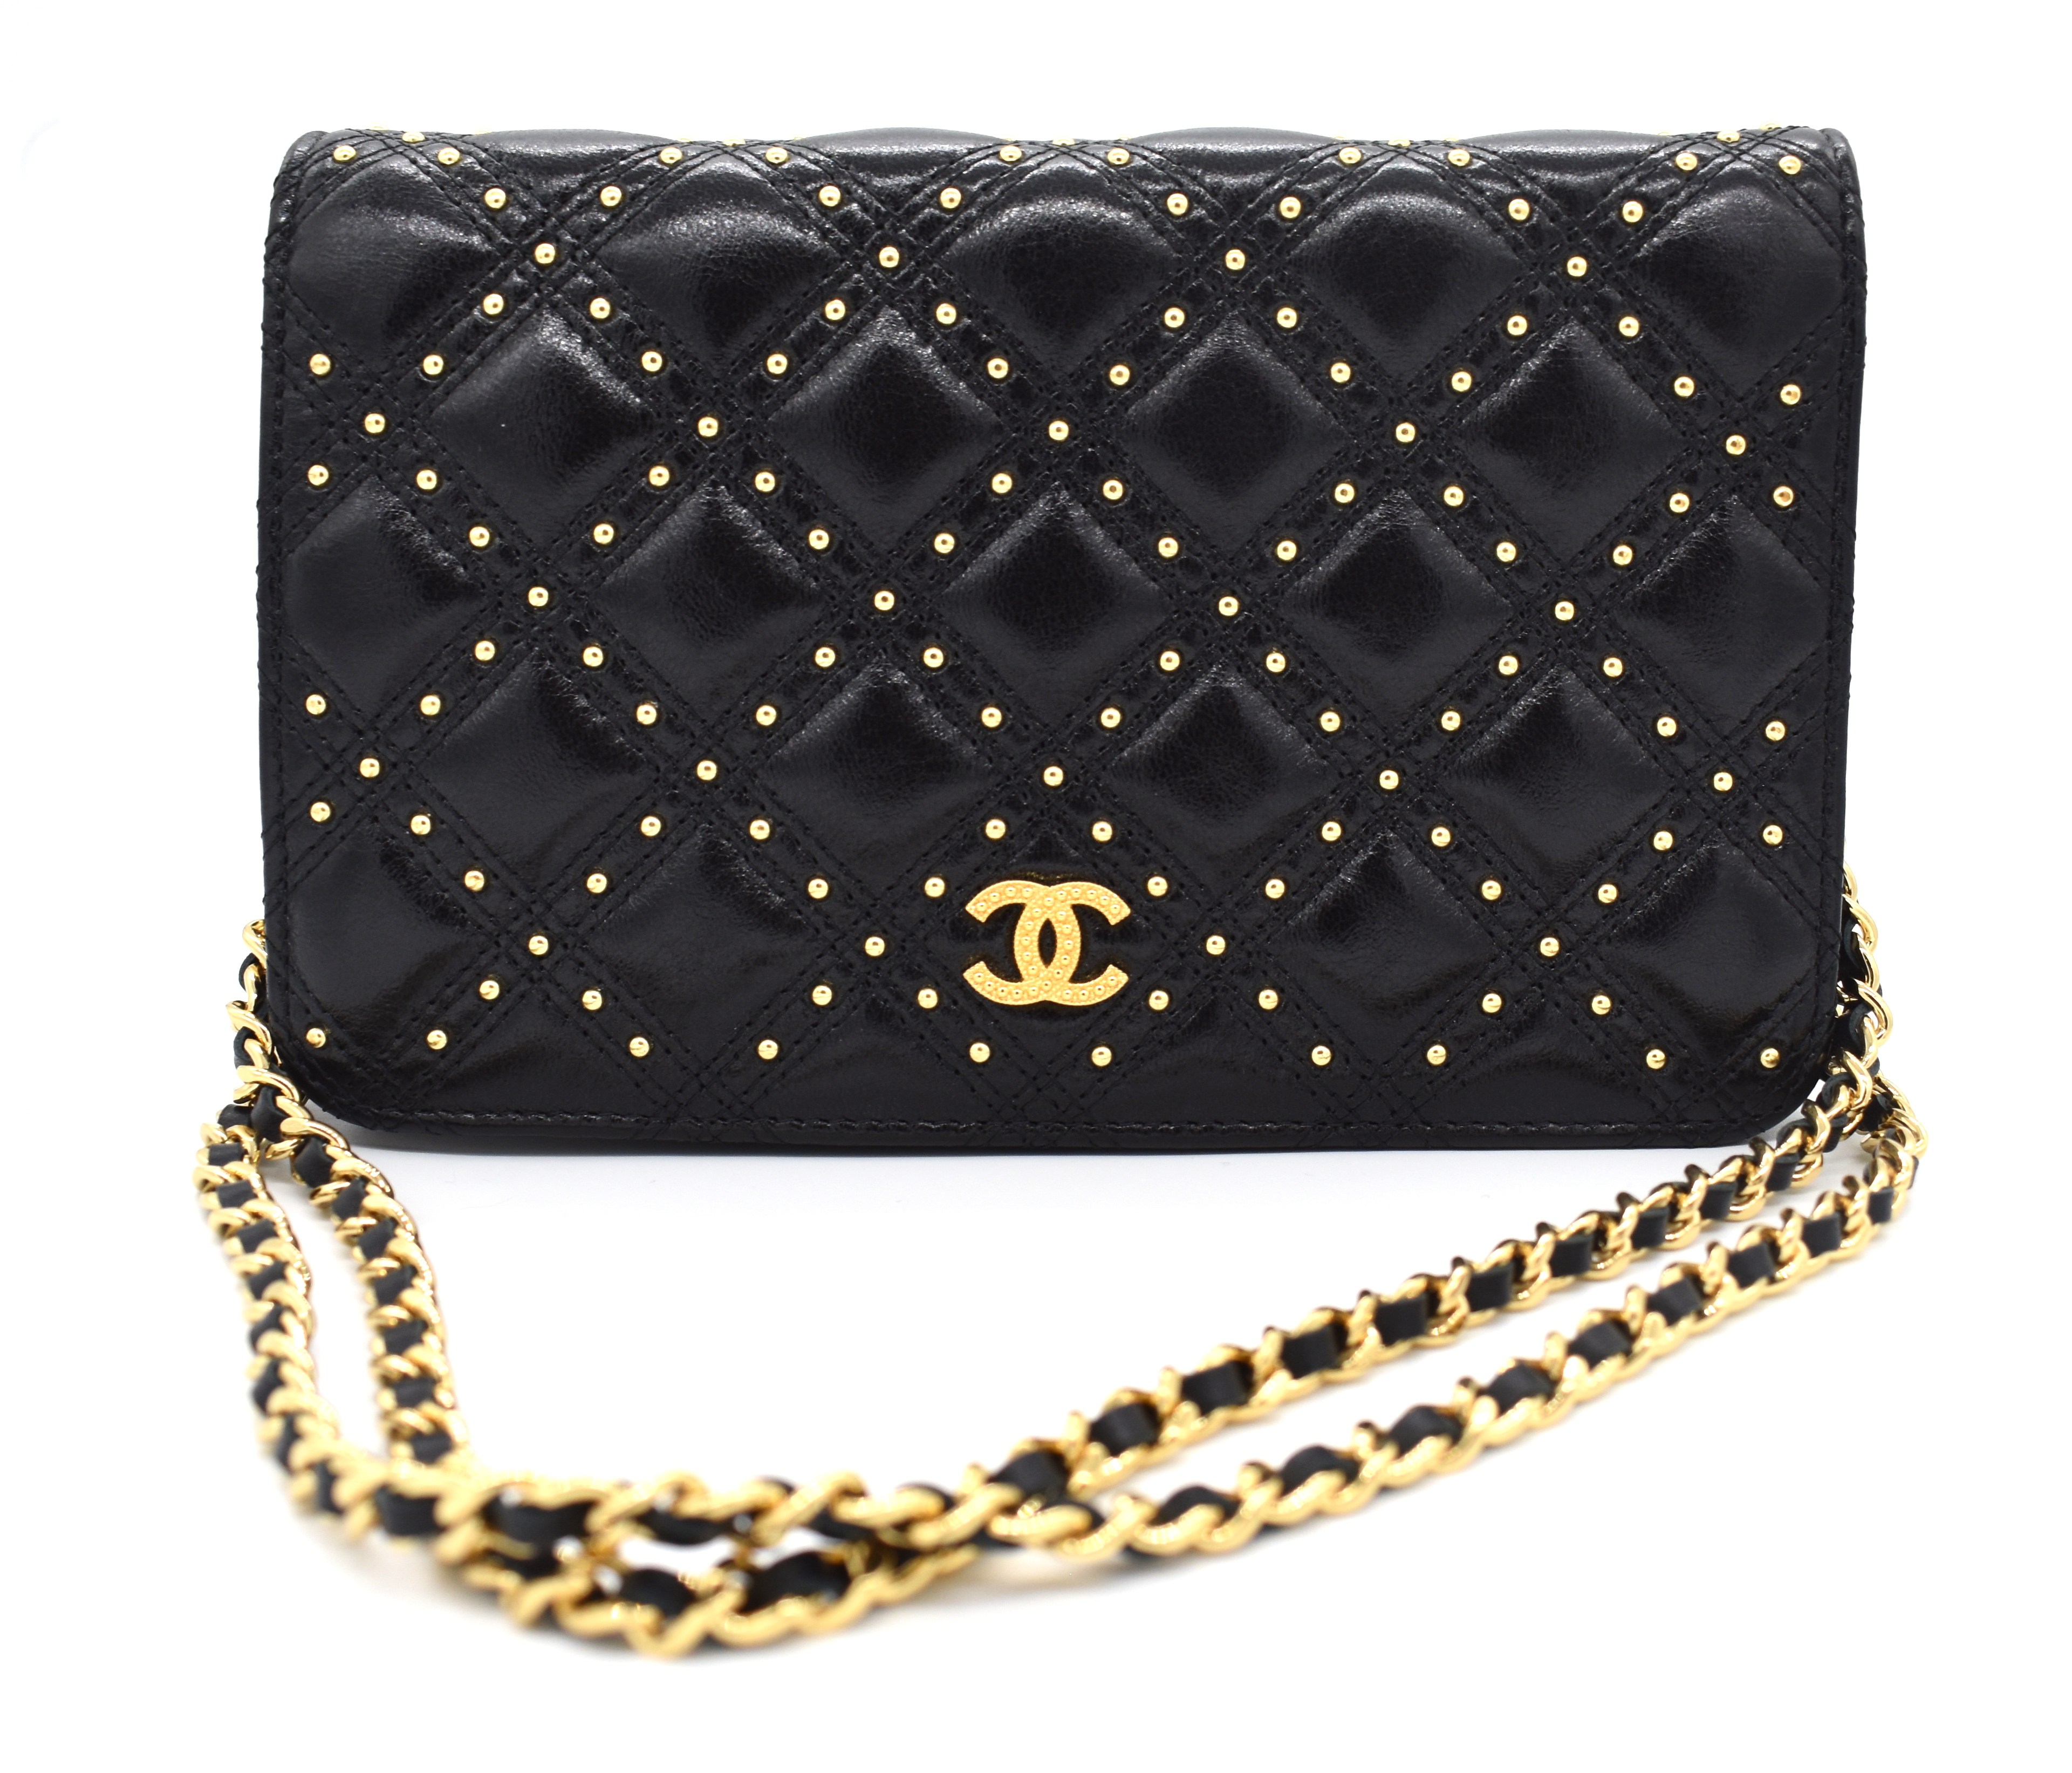 35506eefaab Chanel Wallet On Chain Gold - Best Photo Wallet Justiceforkenny.Org